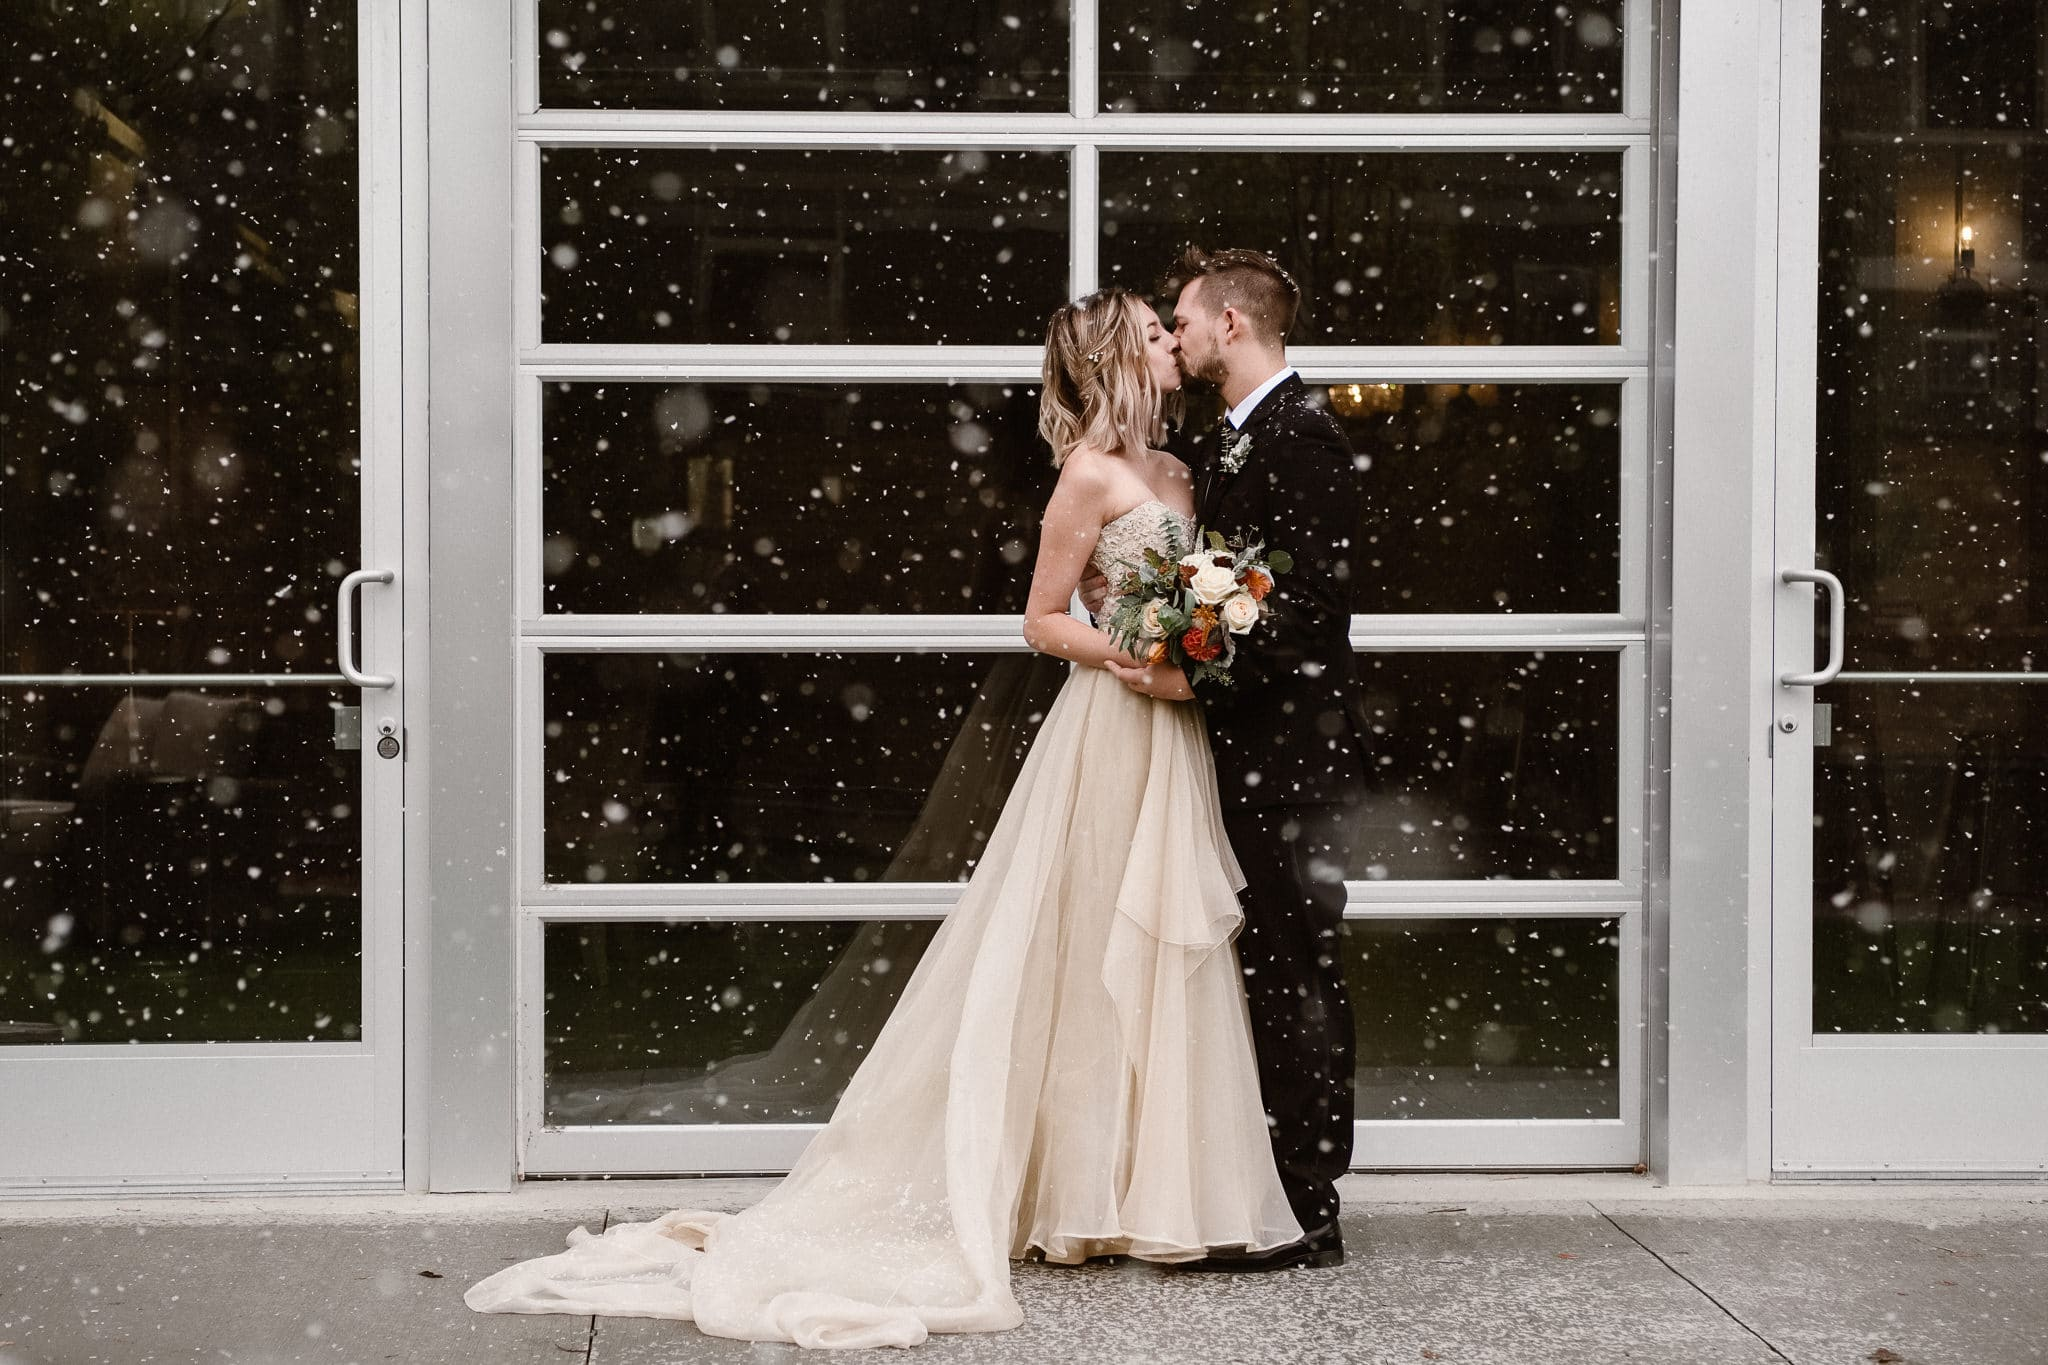 St Vrain Wedding Photographer | Longmont Wedding Photographer | Colorado Winter Wedding Photographer, Colorado industrial chic wedding, bride and groom portraits in snow